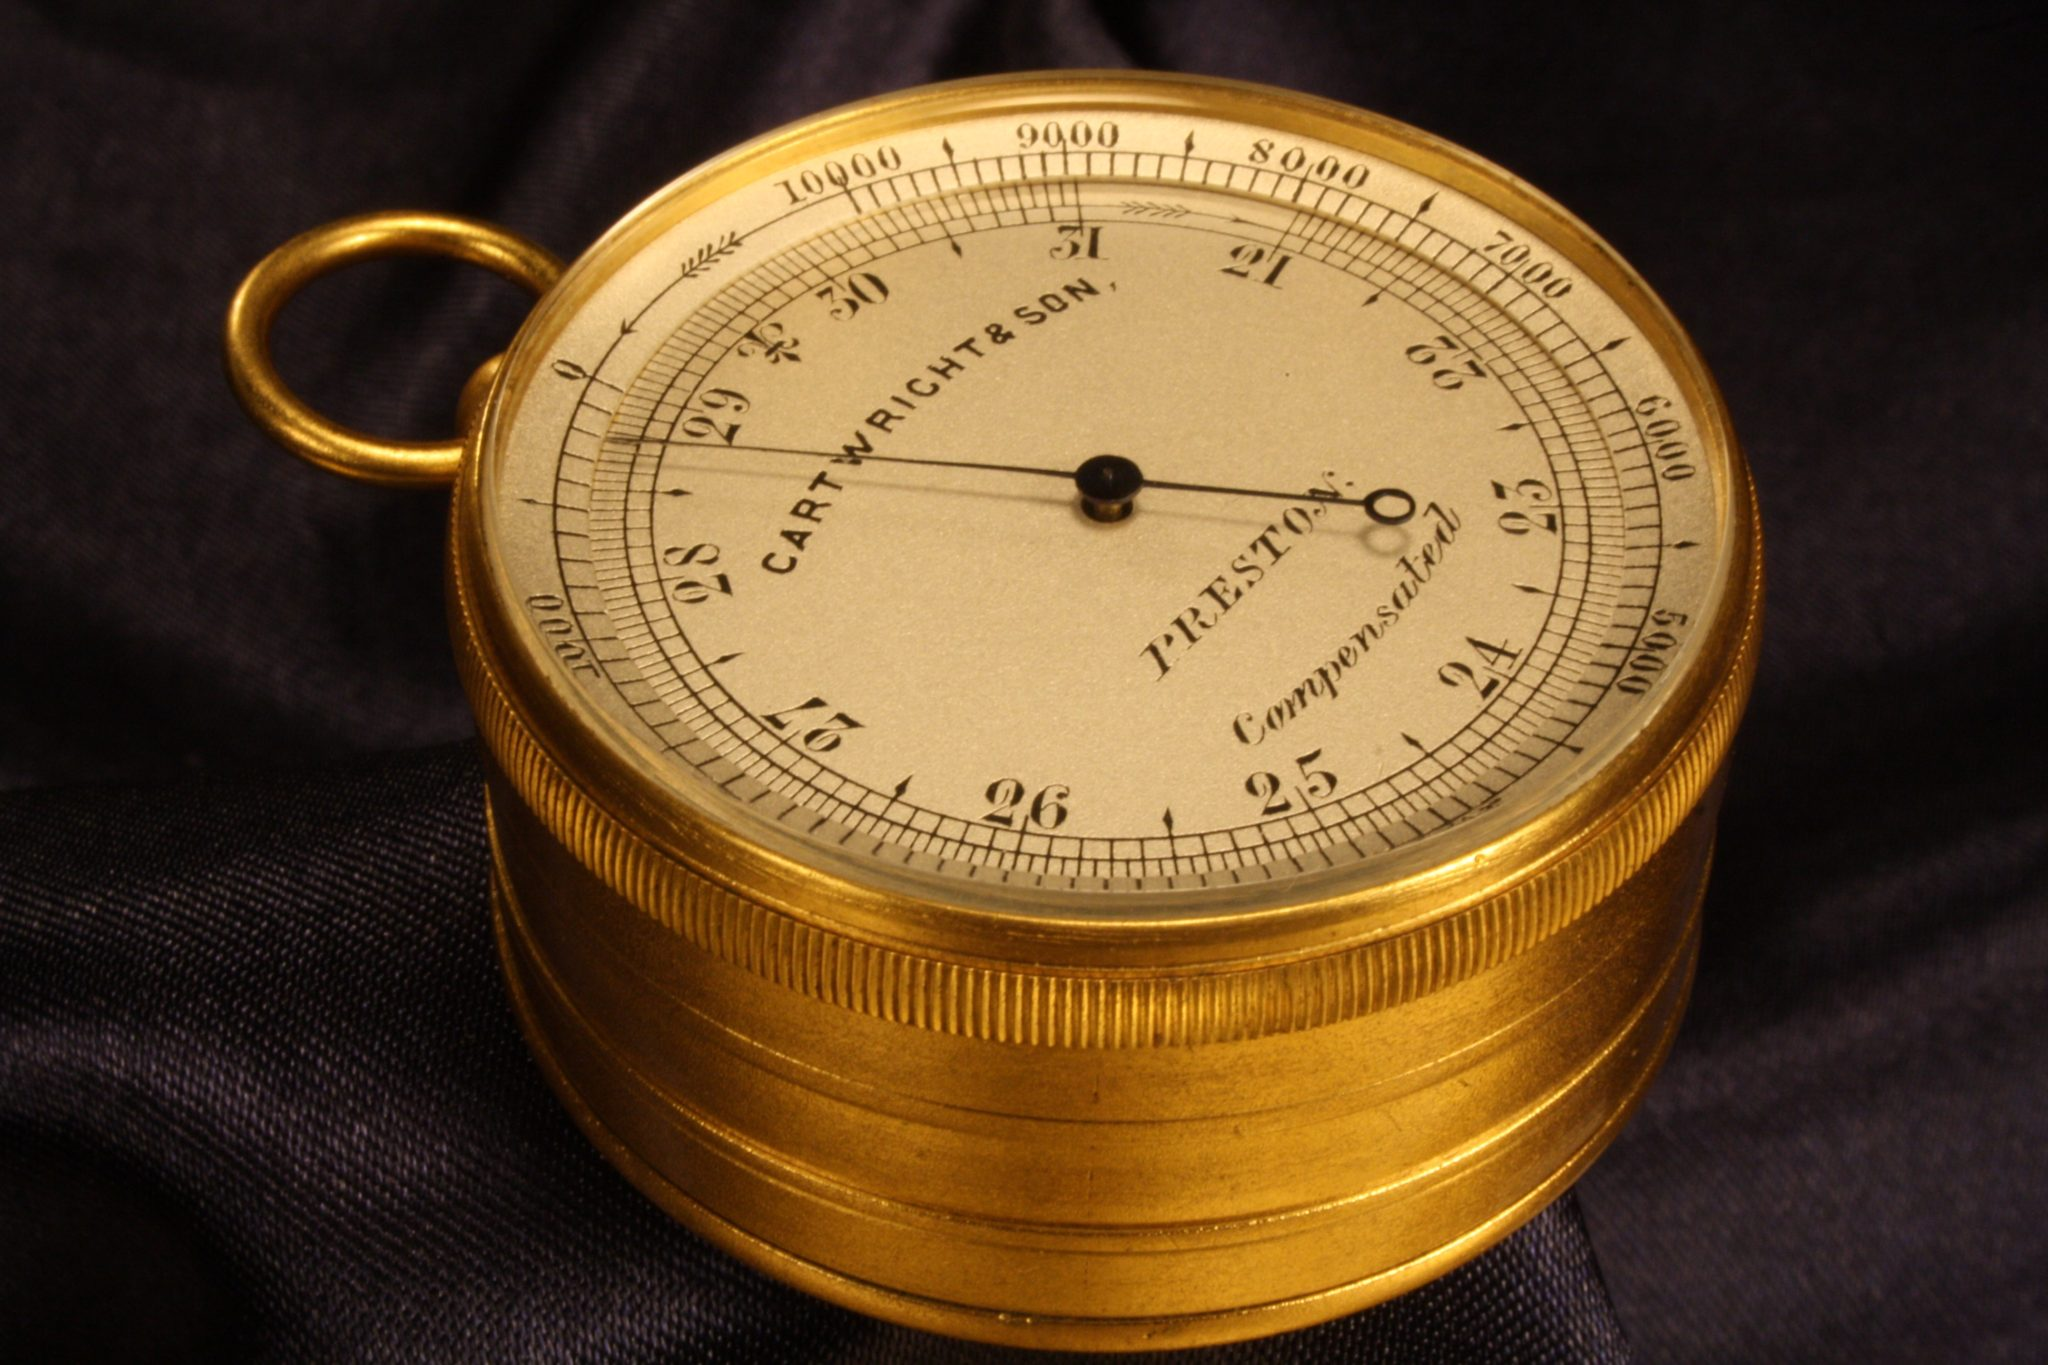 Image of Pocket Barometer Compendium by Cartwright c1920